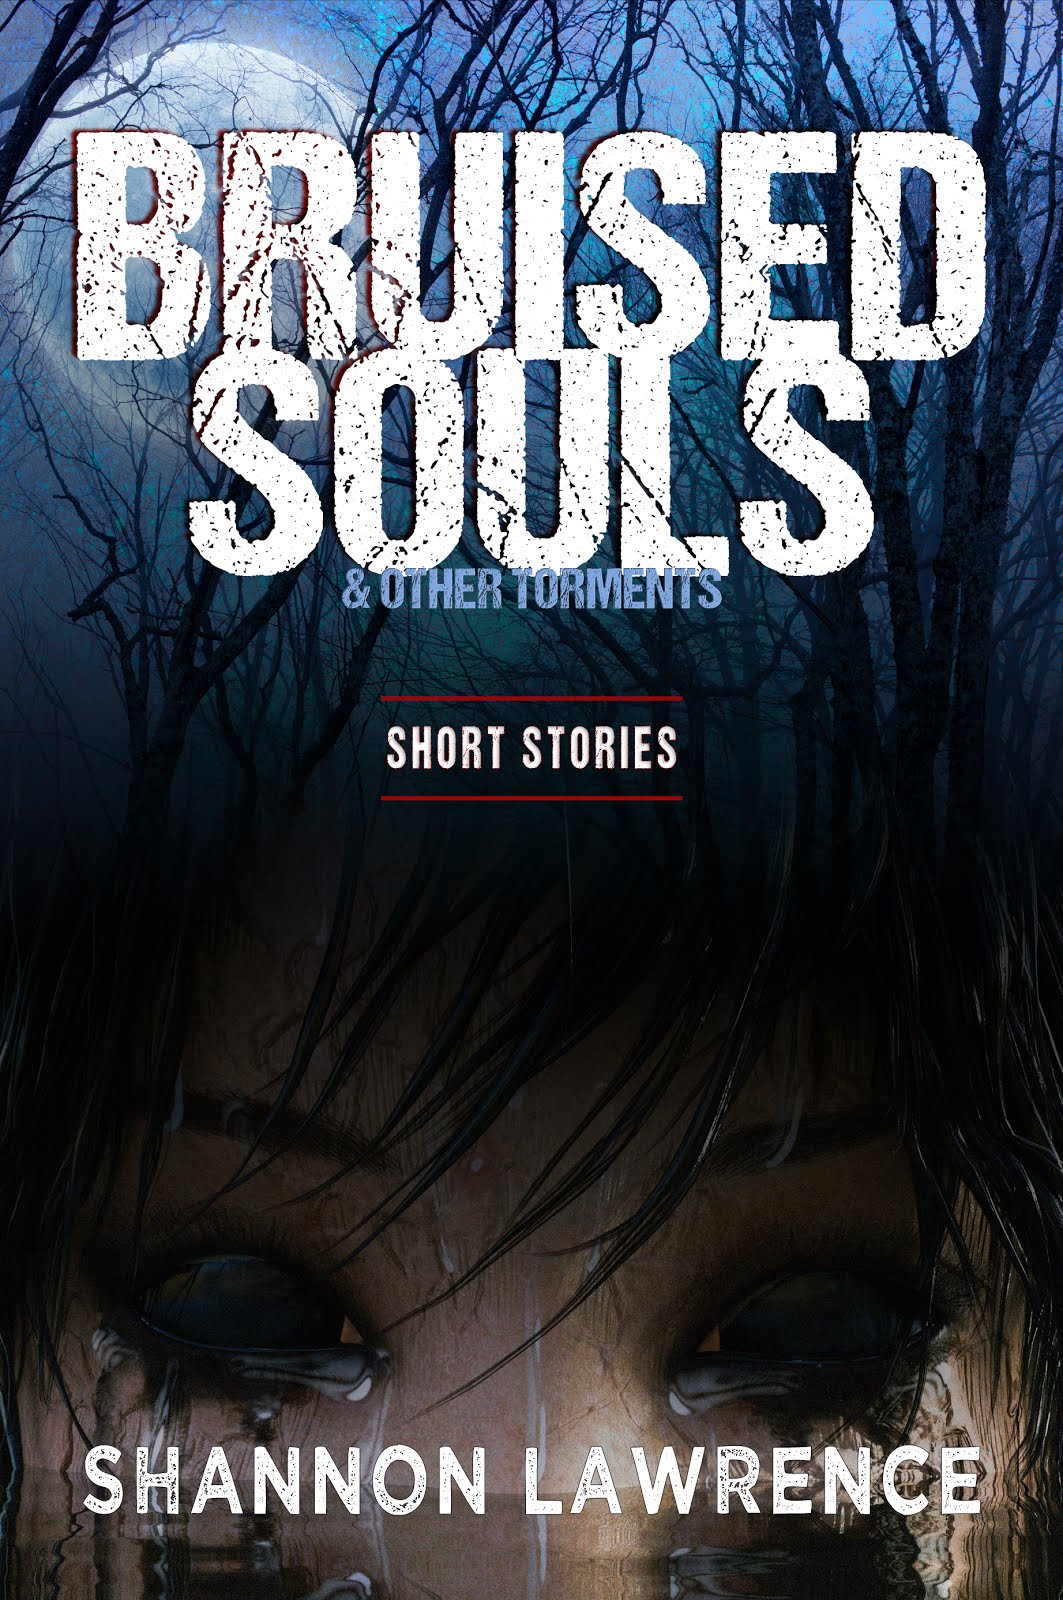 Bruised Souls & Other Torments